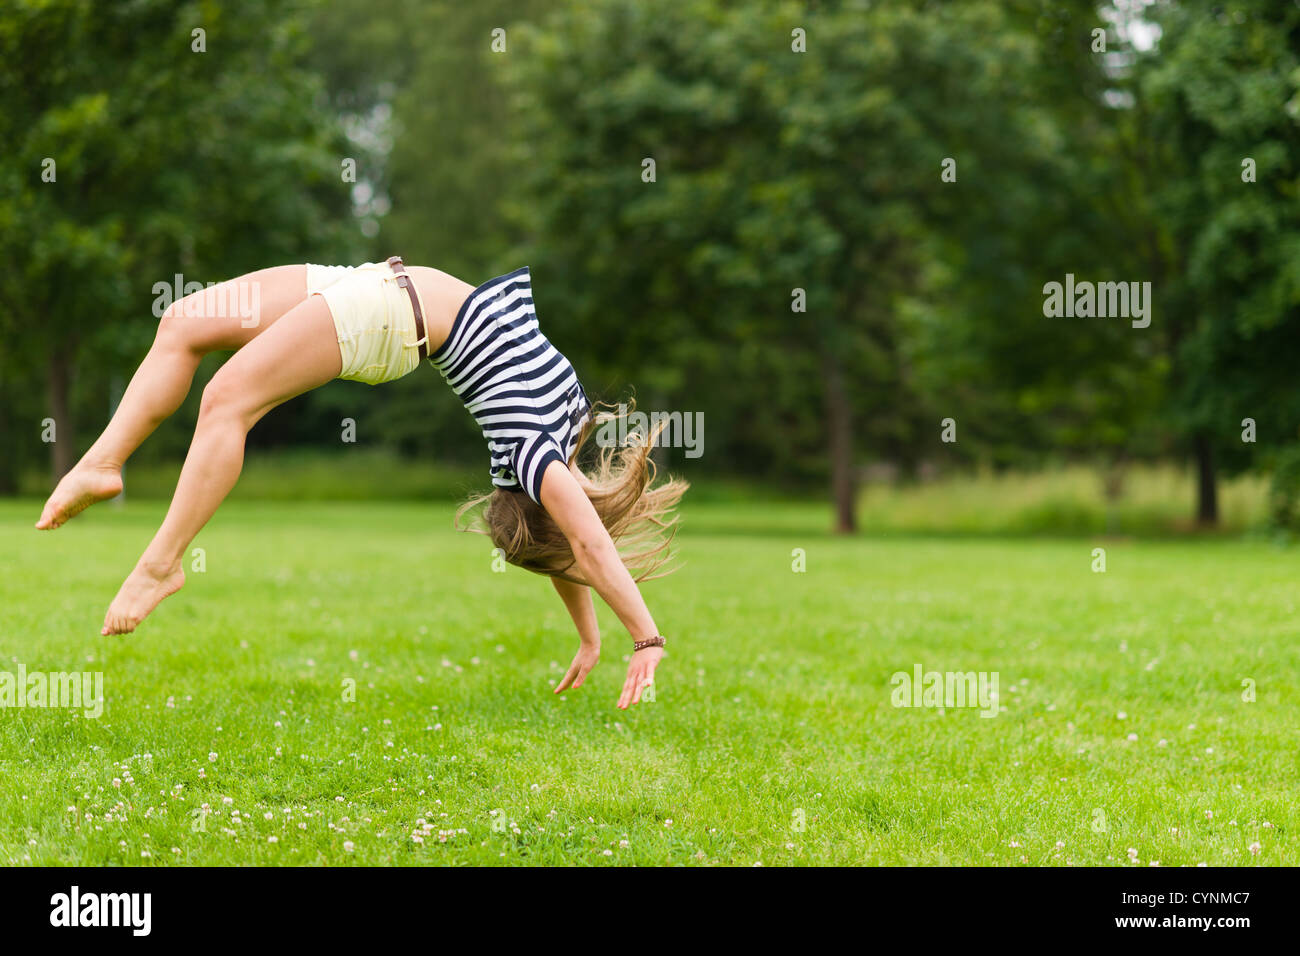 Young sporty girl jump backwards at the park, image with narrow depth of field Stock Photo